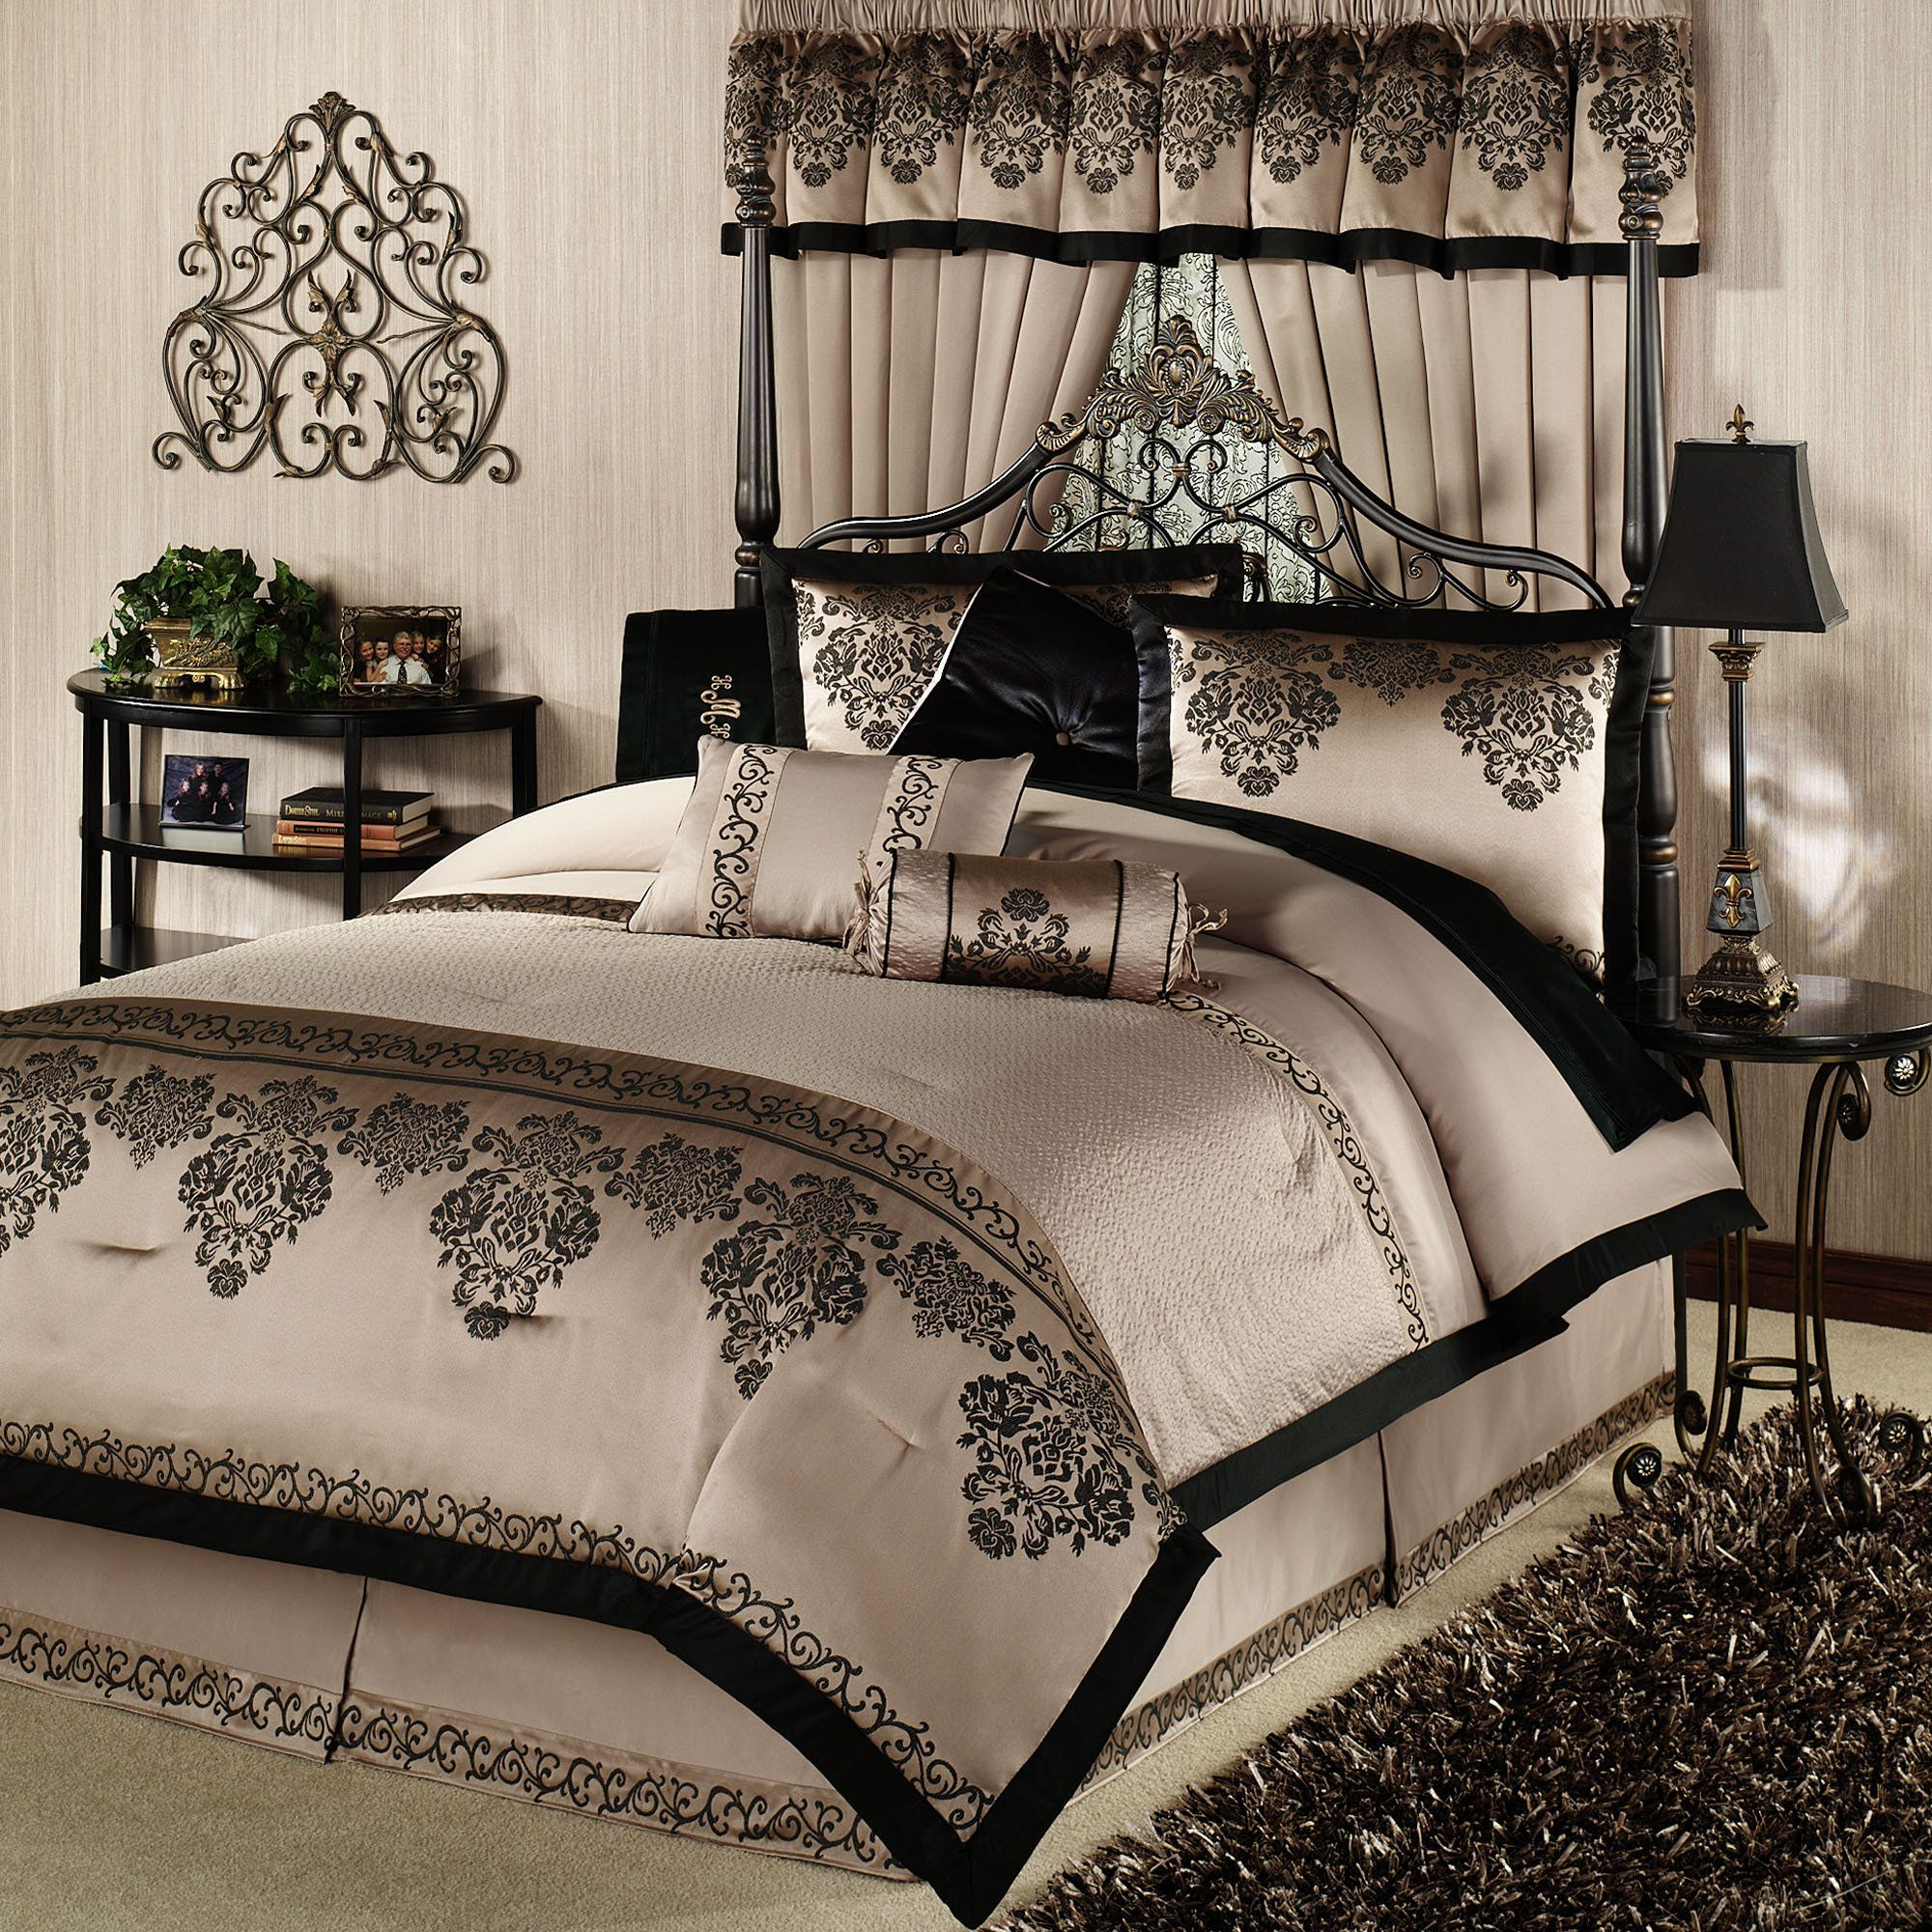 Best King Size Bed Comforters Sets Overview Details Sizes 400 x 300